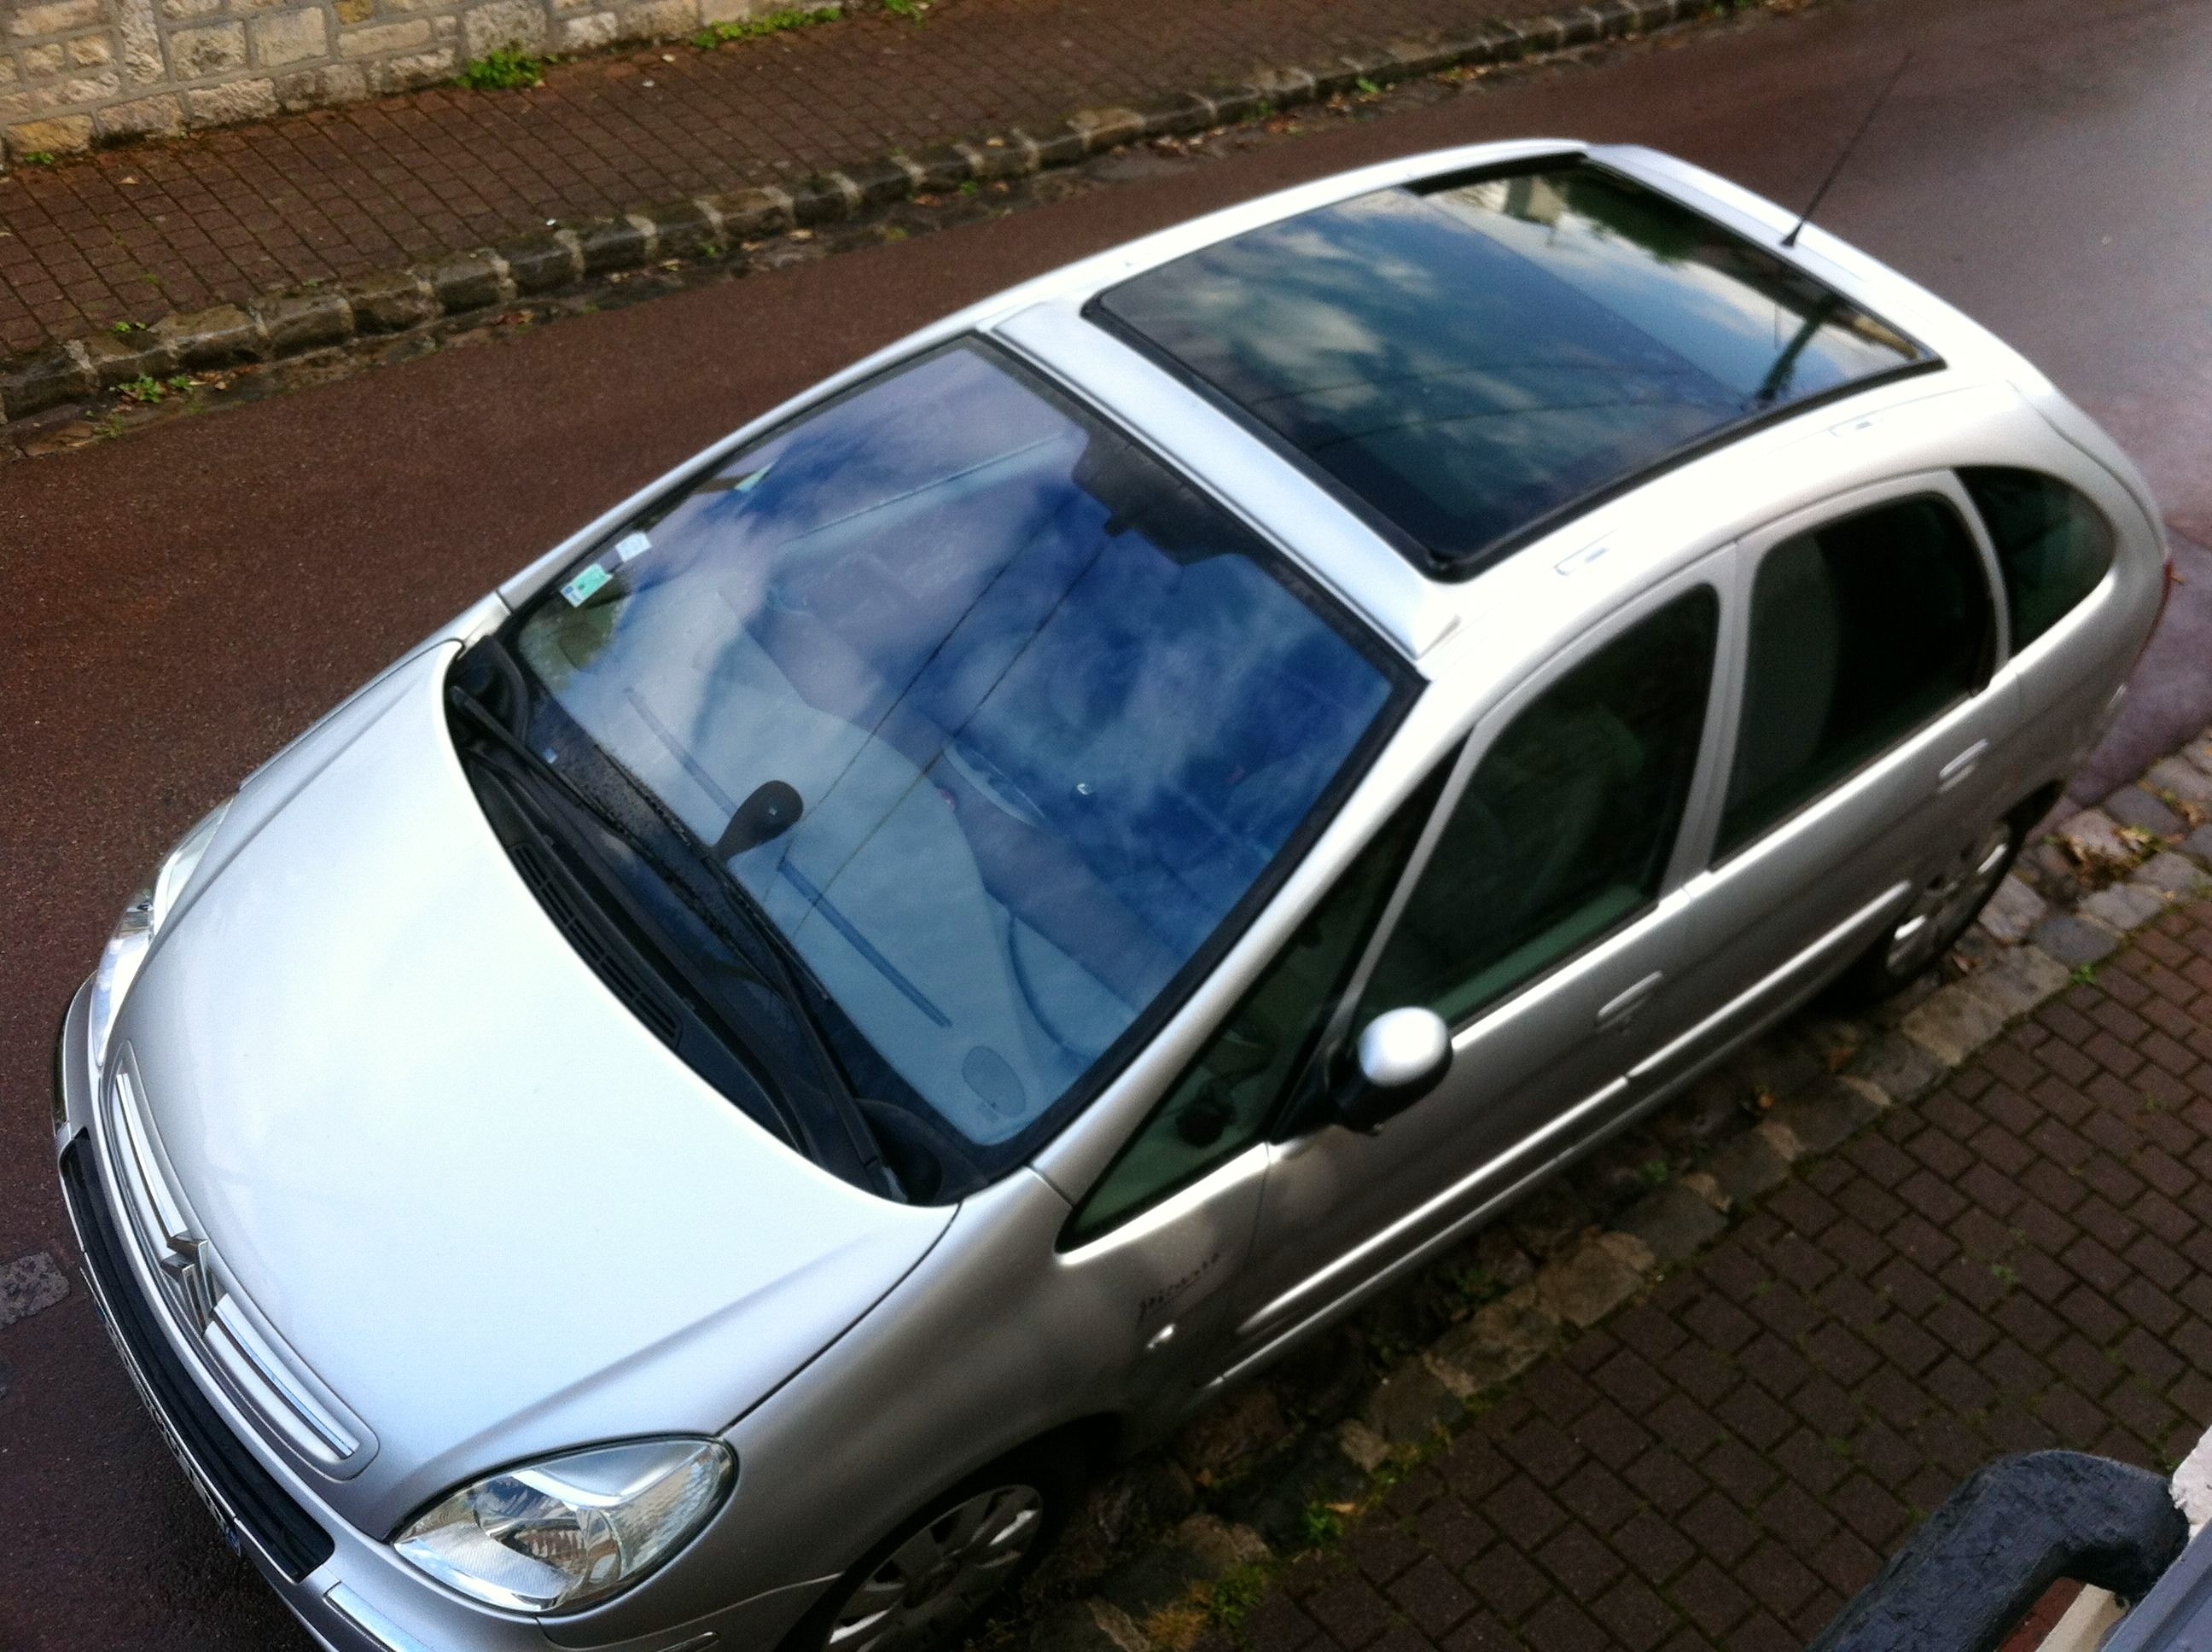 Citroen Xsara Picasso, 2005, Essence, automatique